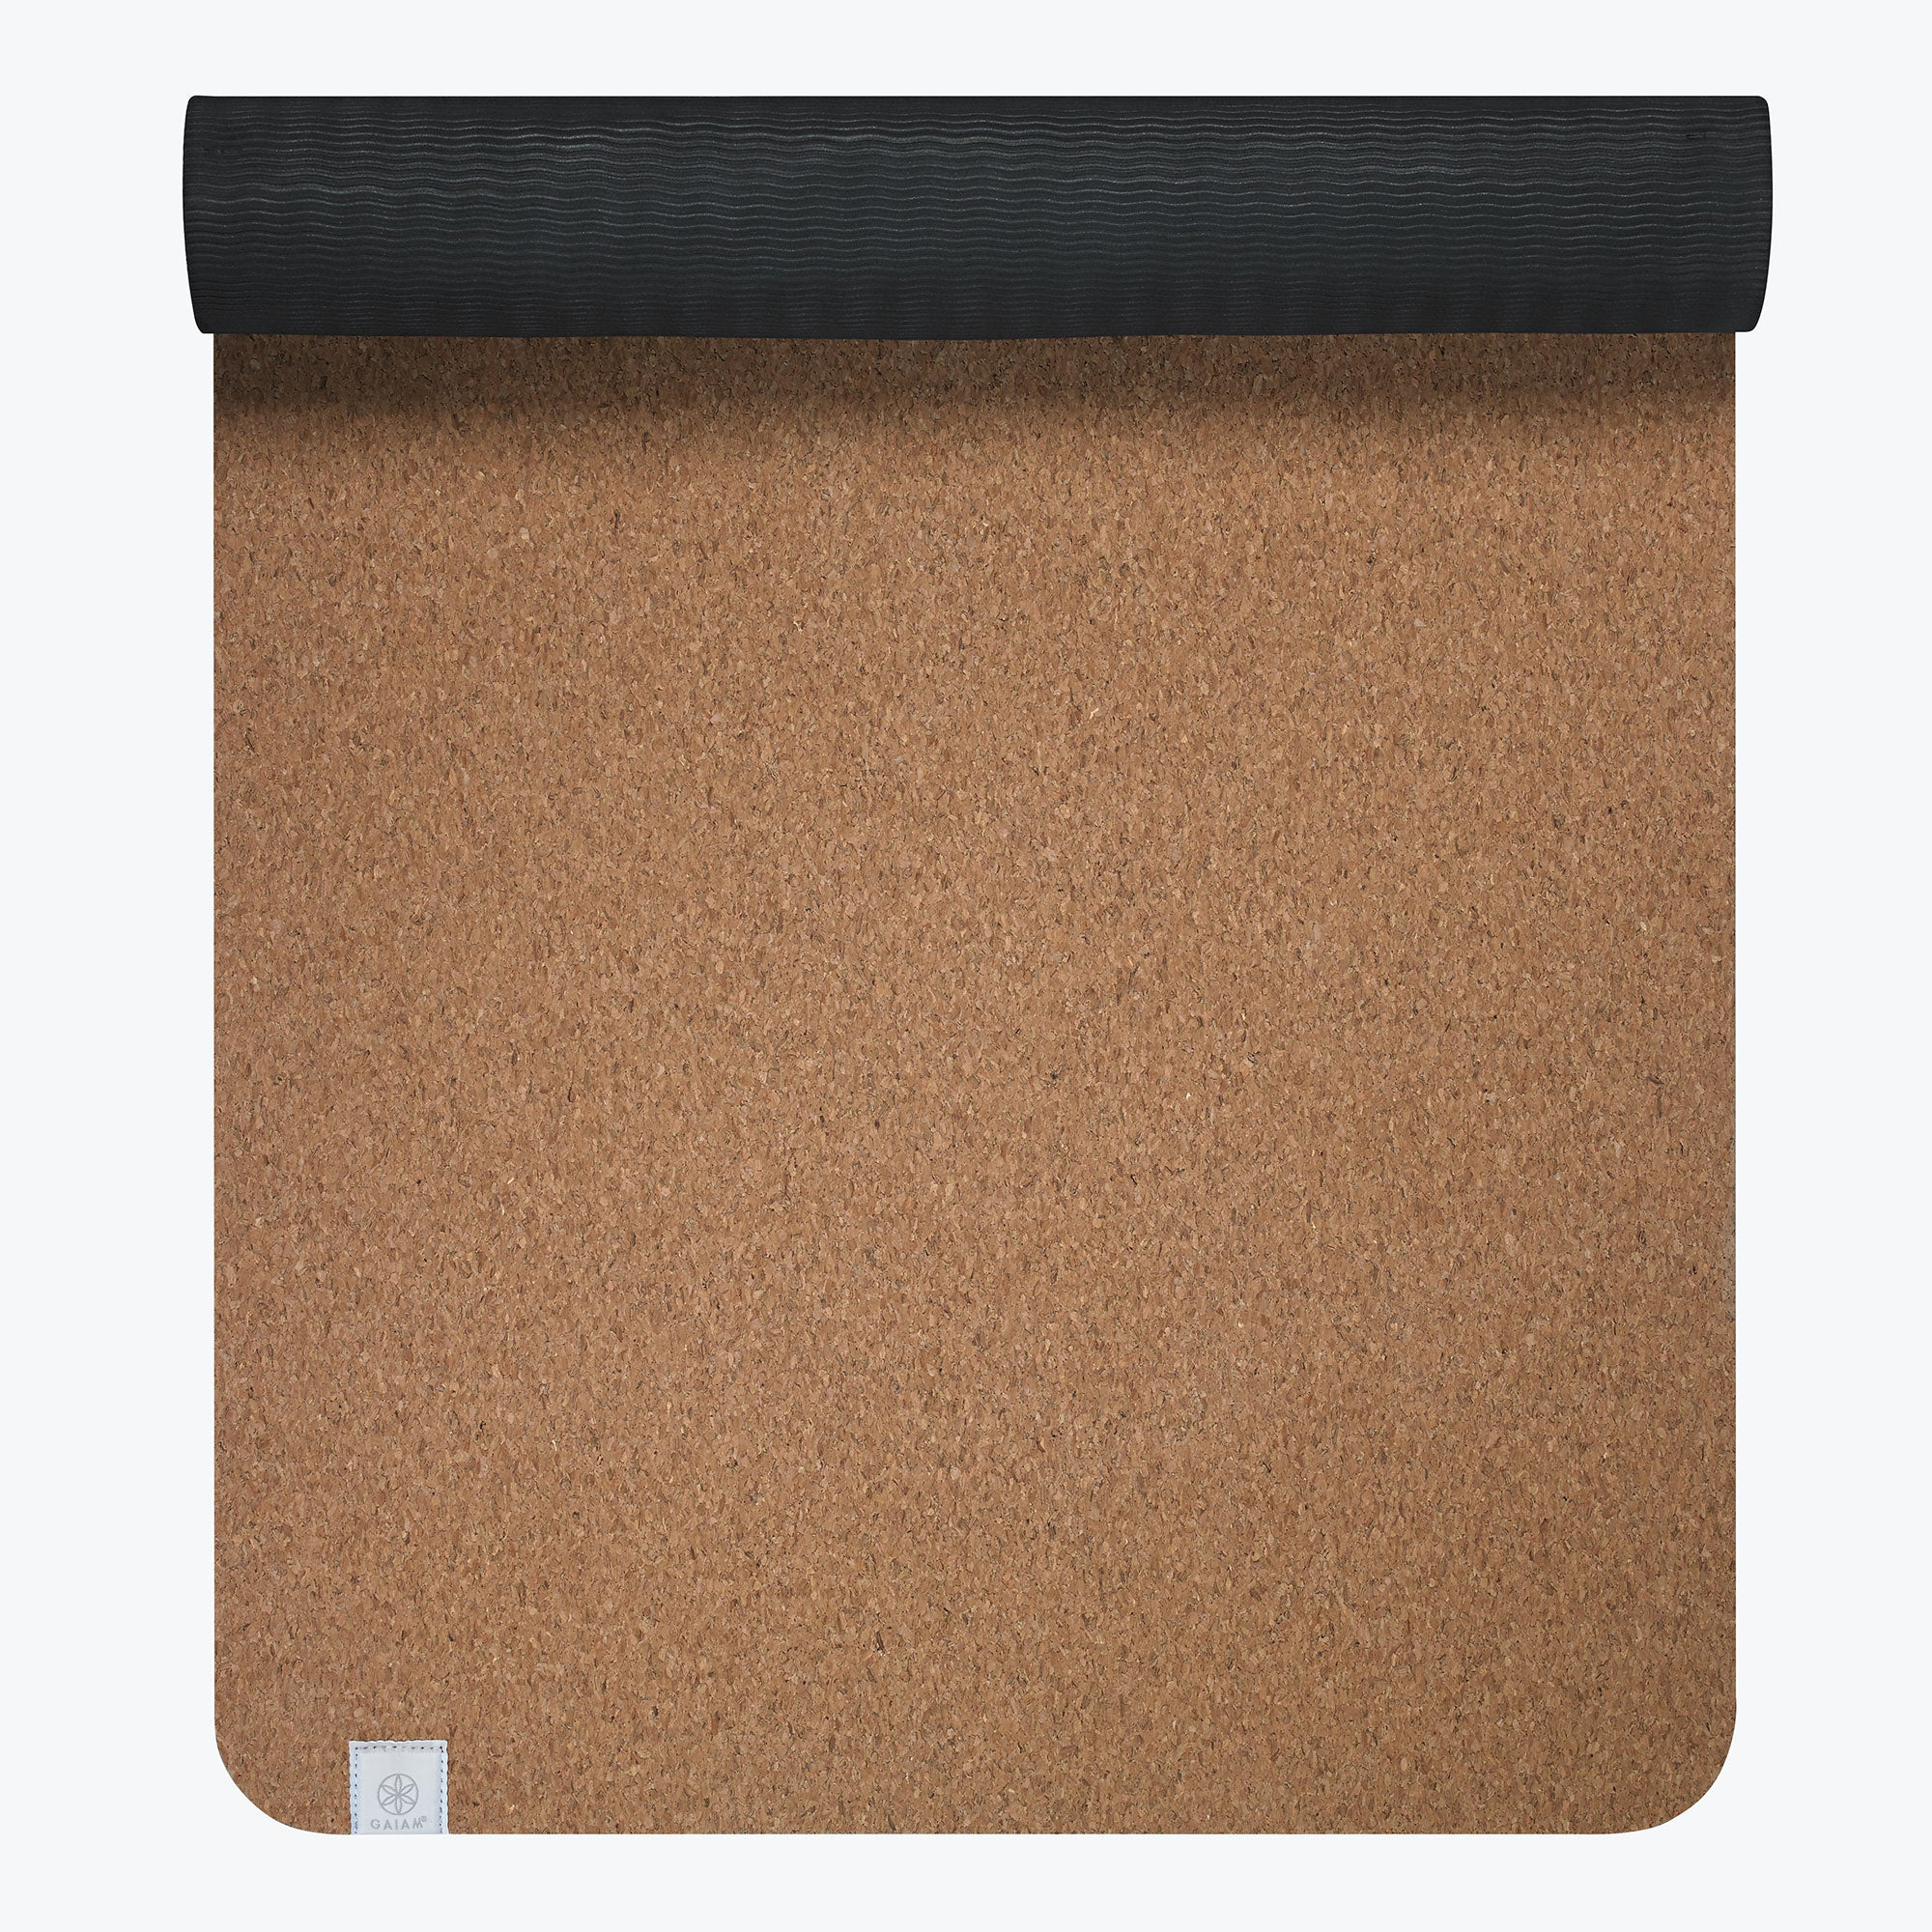 turntable cork black the mats of copy cobblestone house dsc mat white products